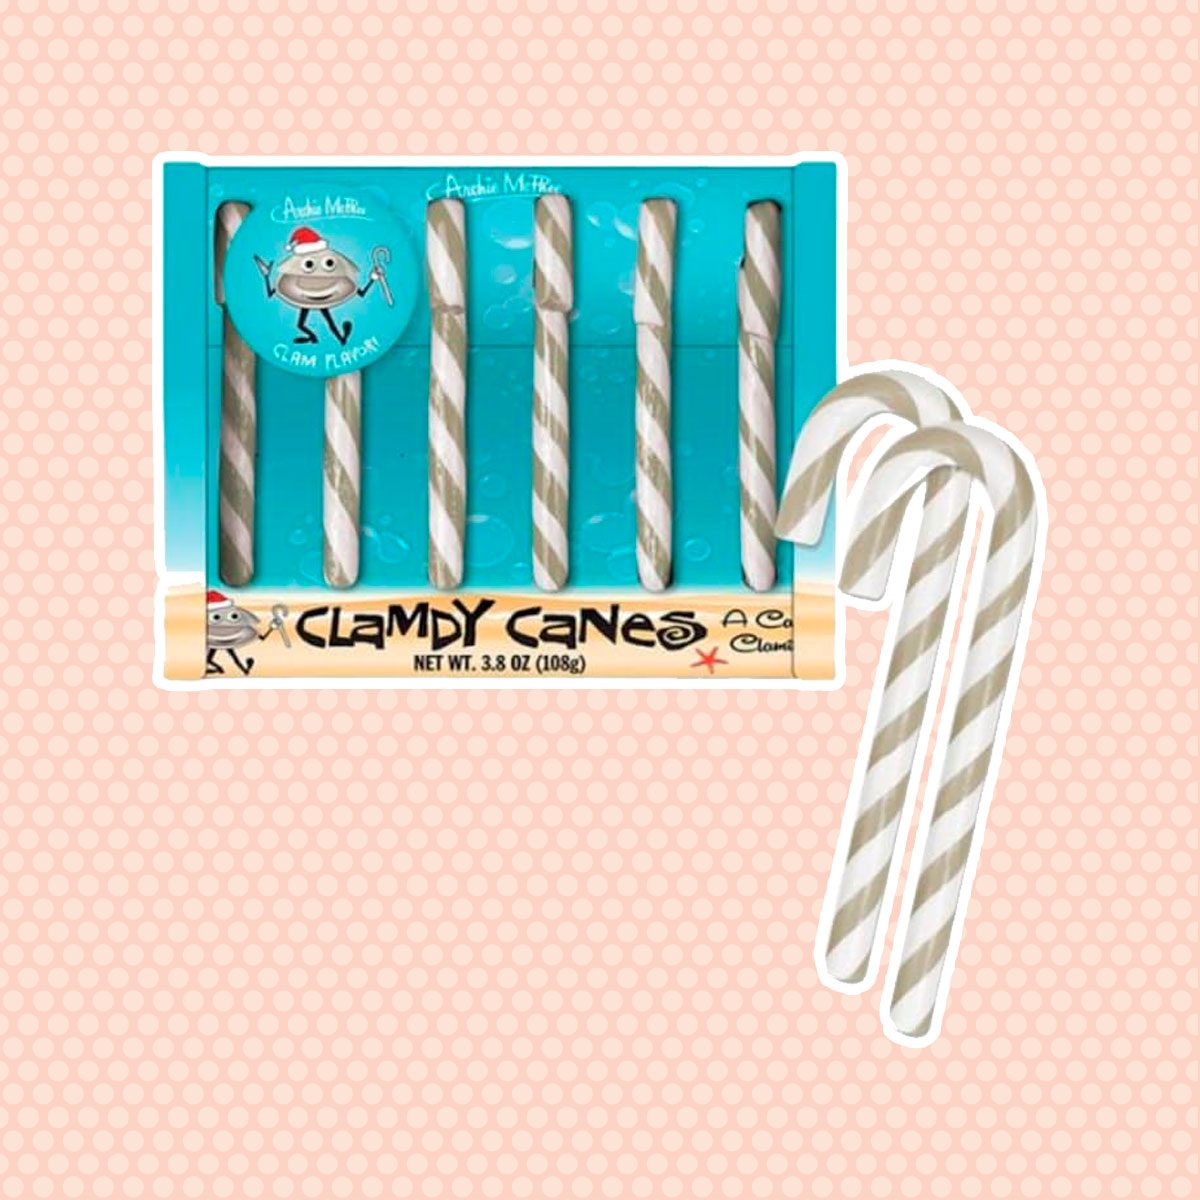 Clam Candy Canes: Box of 6